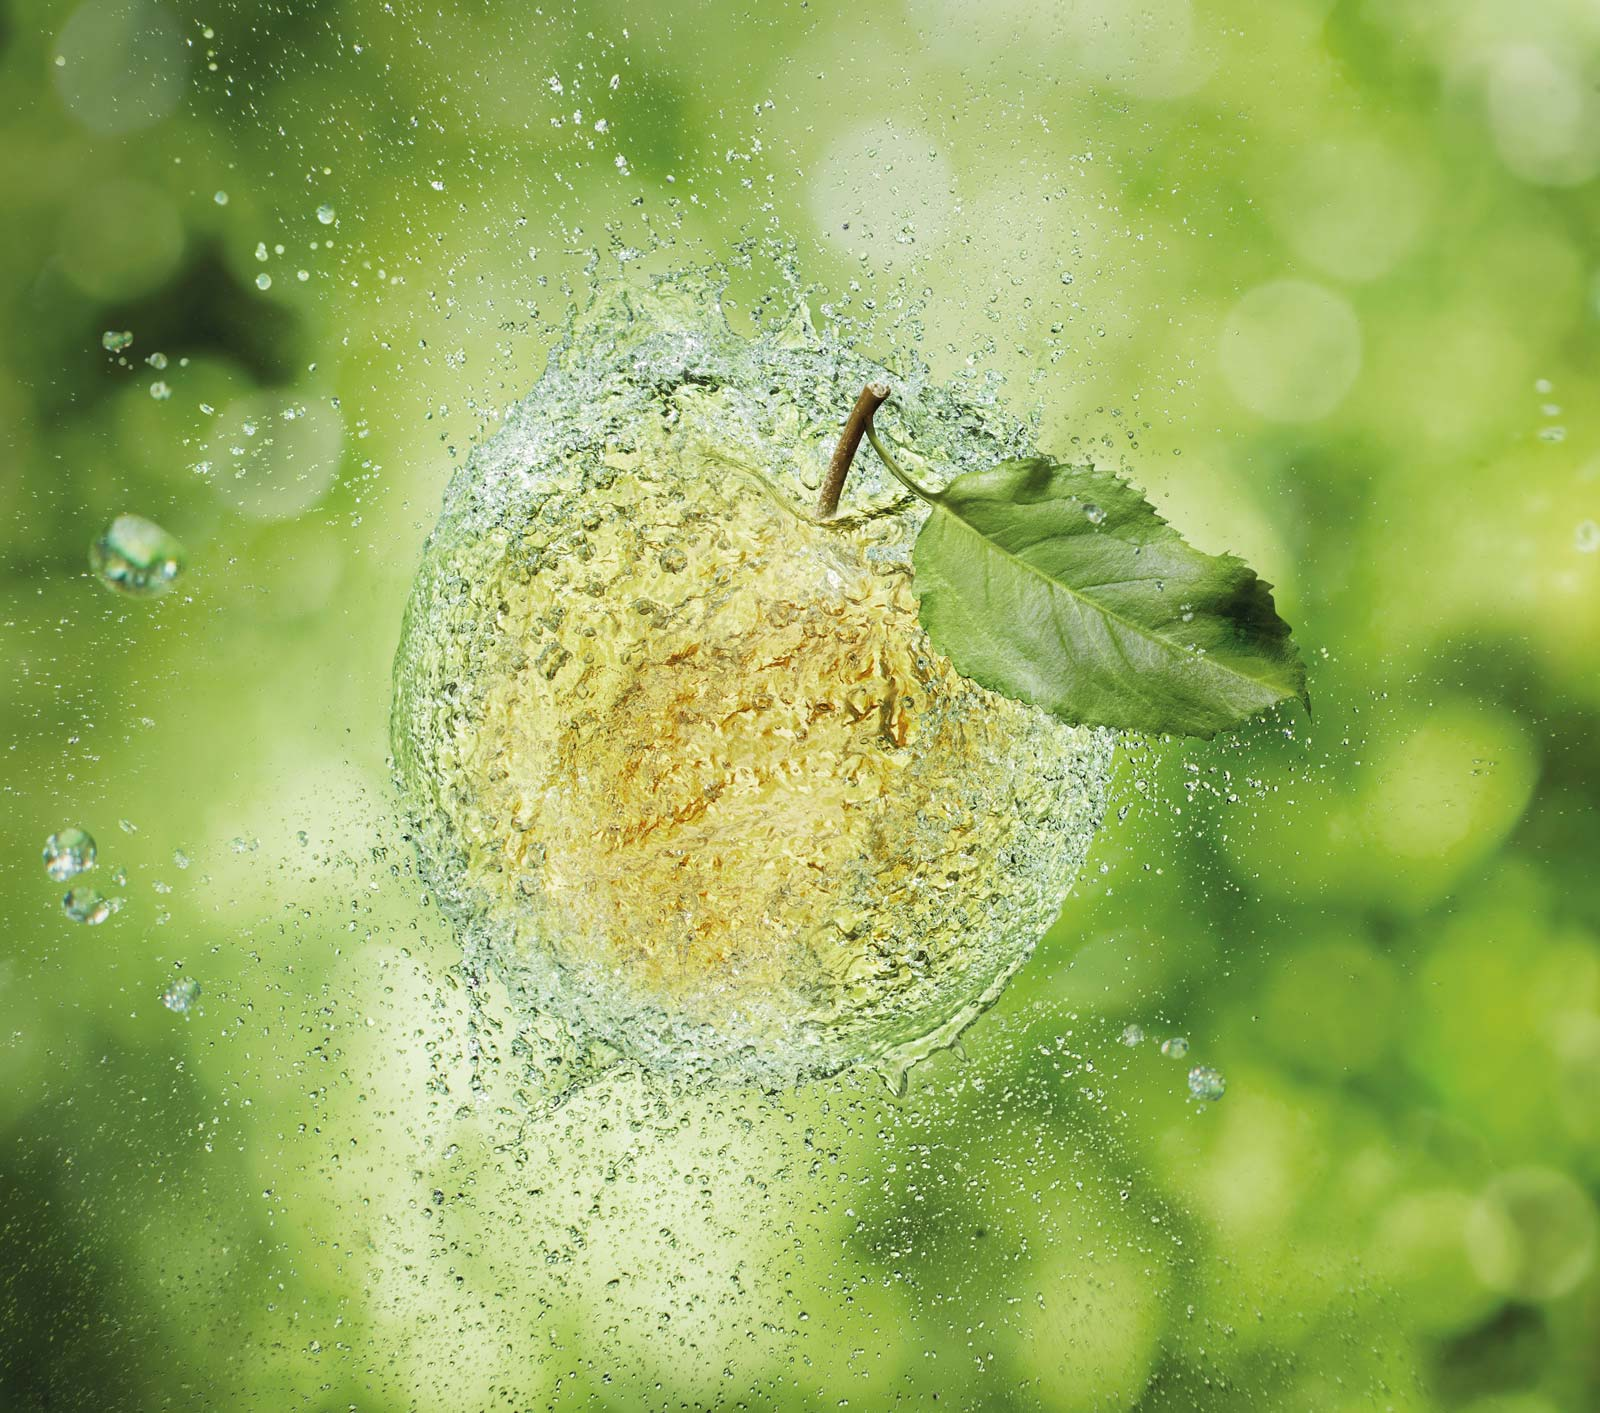 Jonathan's image, shot for Appleman's Cider